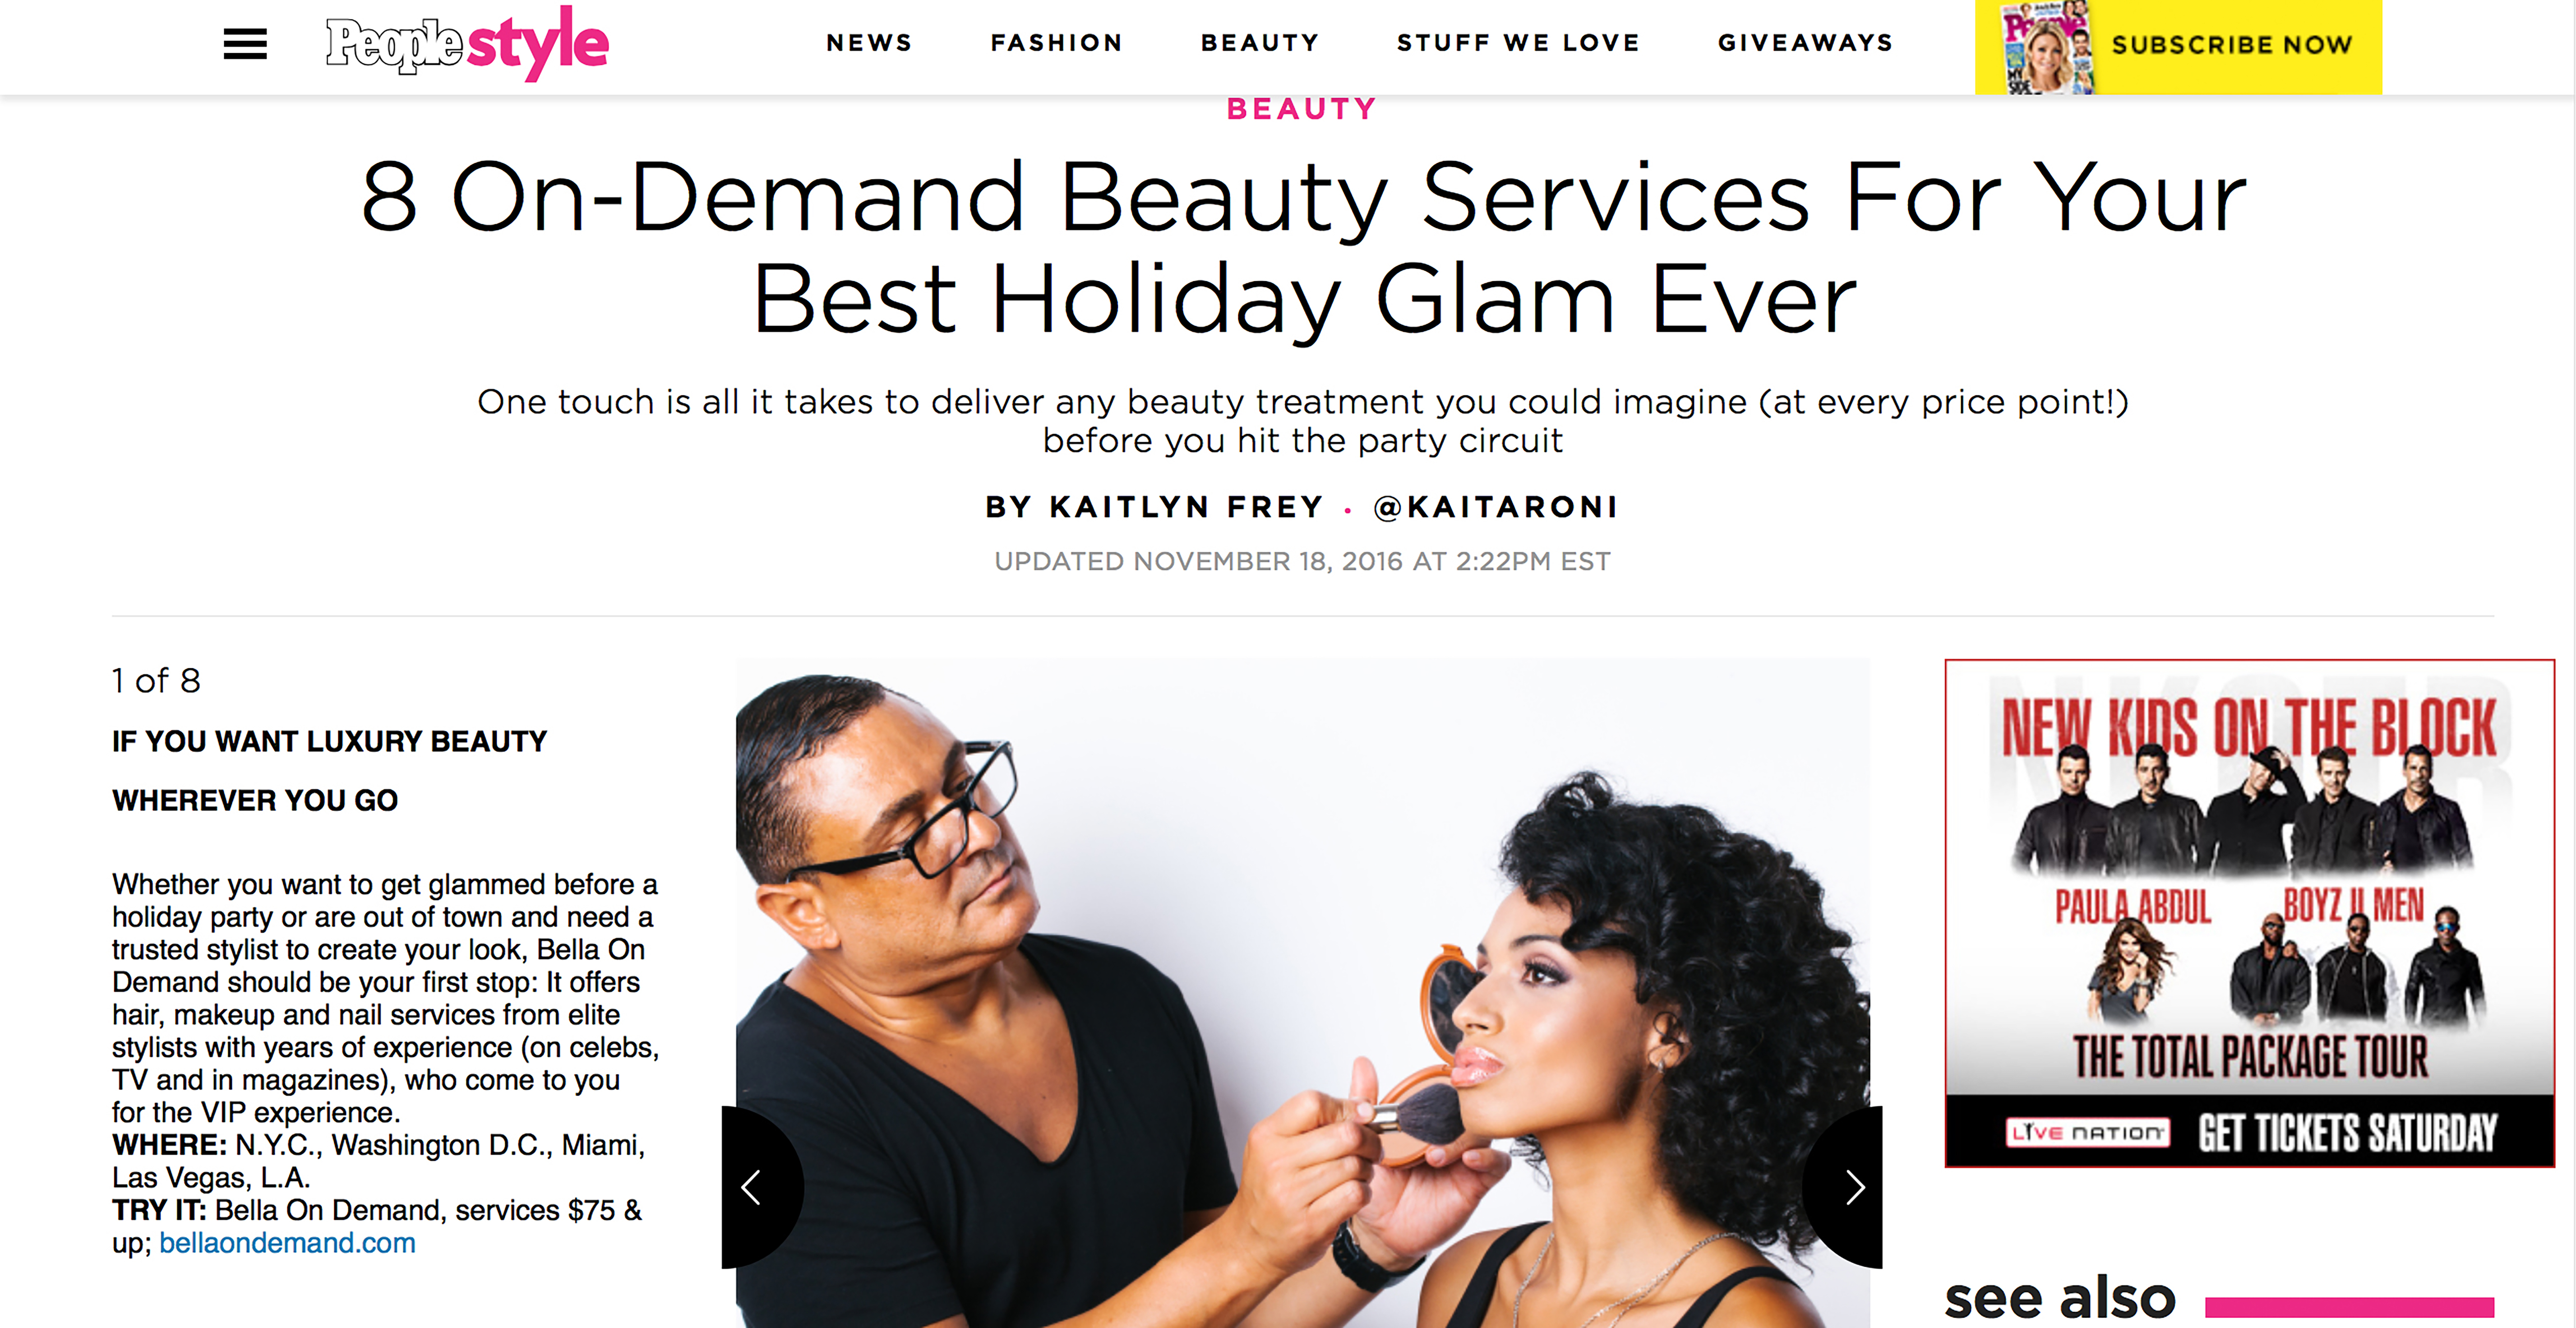 We were thrilled to be featured on People.com as one of the top 8 On-Demand beauty services for your best holiday glam ever! People is one of our most favorite publications and we were so honored to be included in this round up of on-demand all stars. The holiday season is now upon us and if you are […]